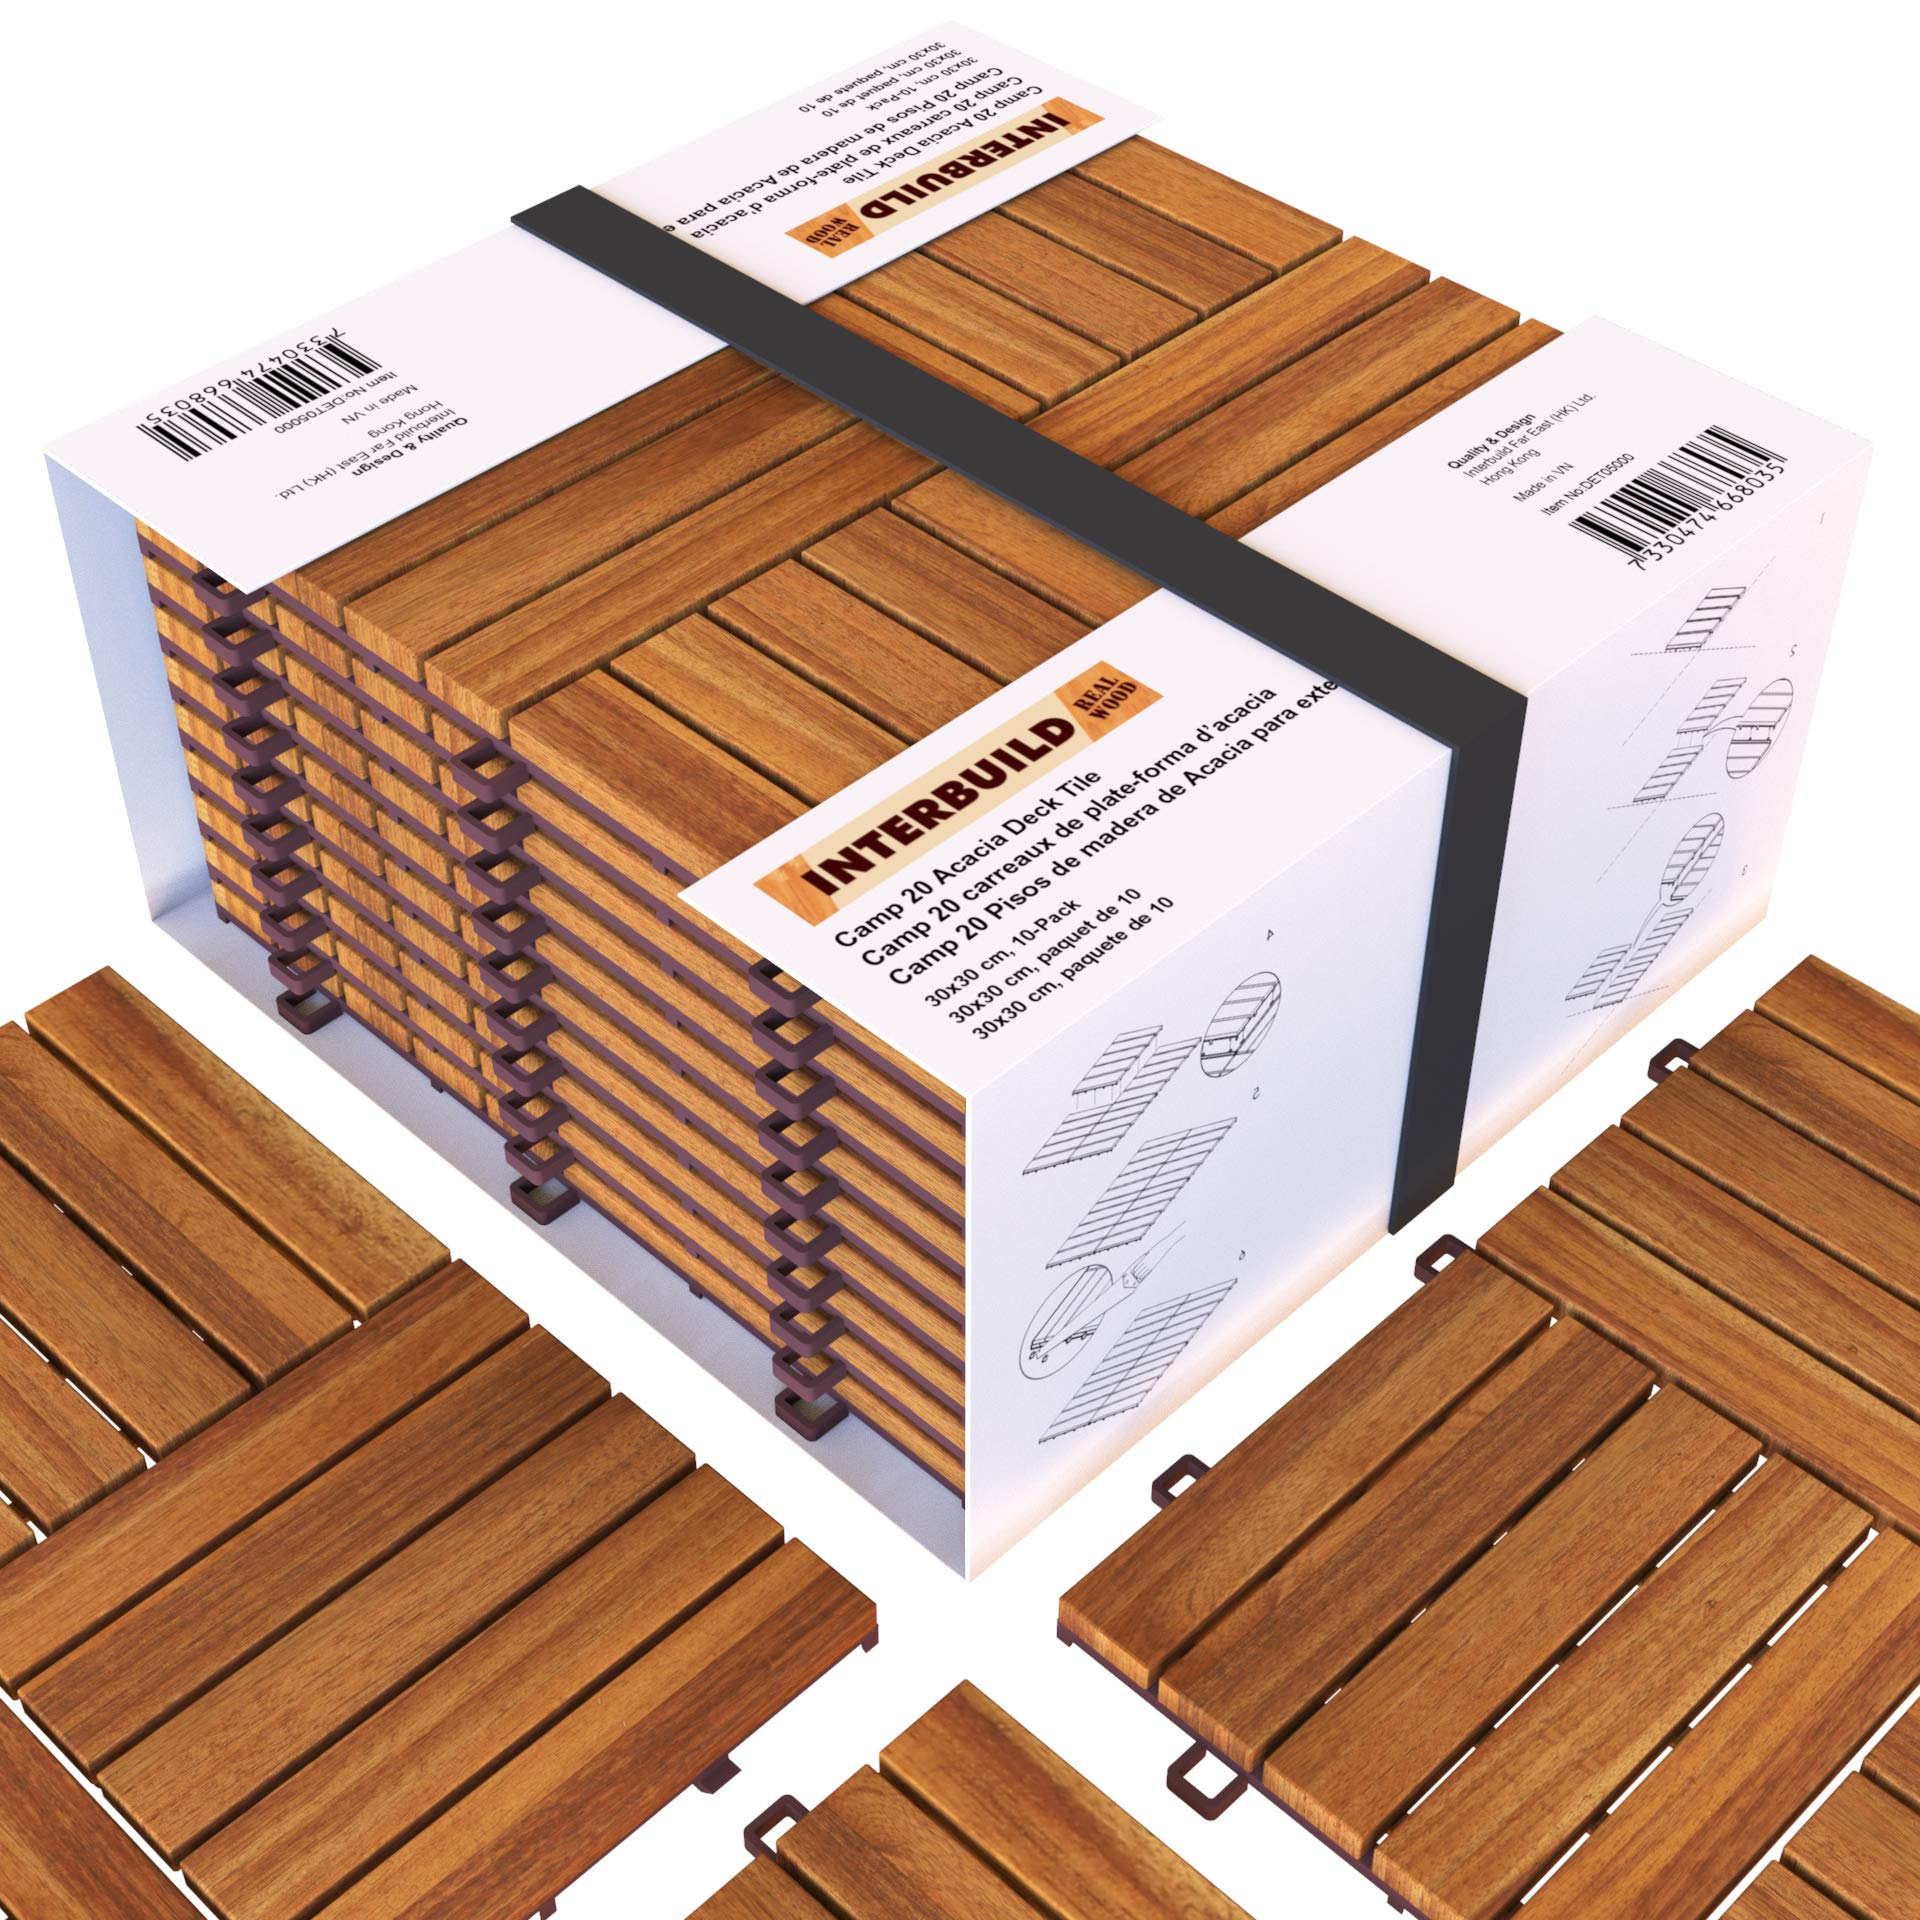 Acacia Hardwood Deck and Patio Easy to Install Interlocking Flooring Tiles 12''×12'' - 10 TILES / PACK - Totally 10 Sq. Ft. by INTERBUILD REAL WOOD